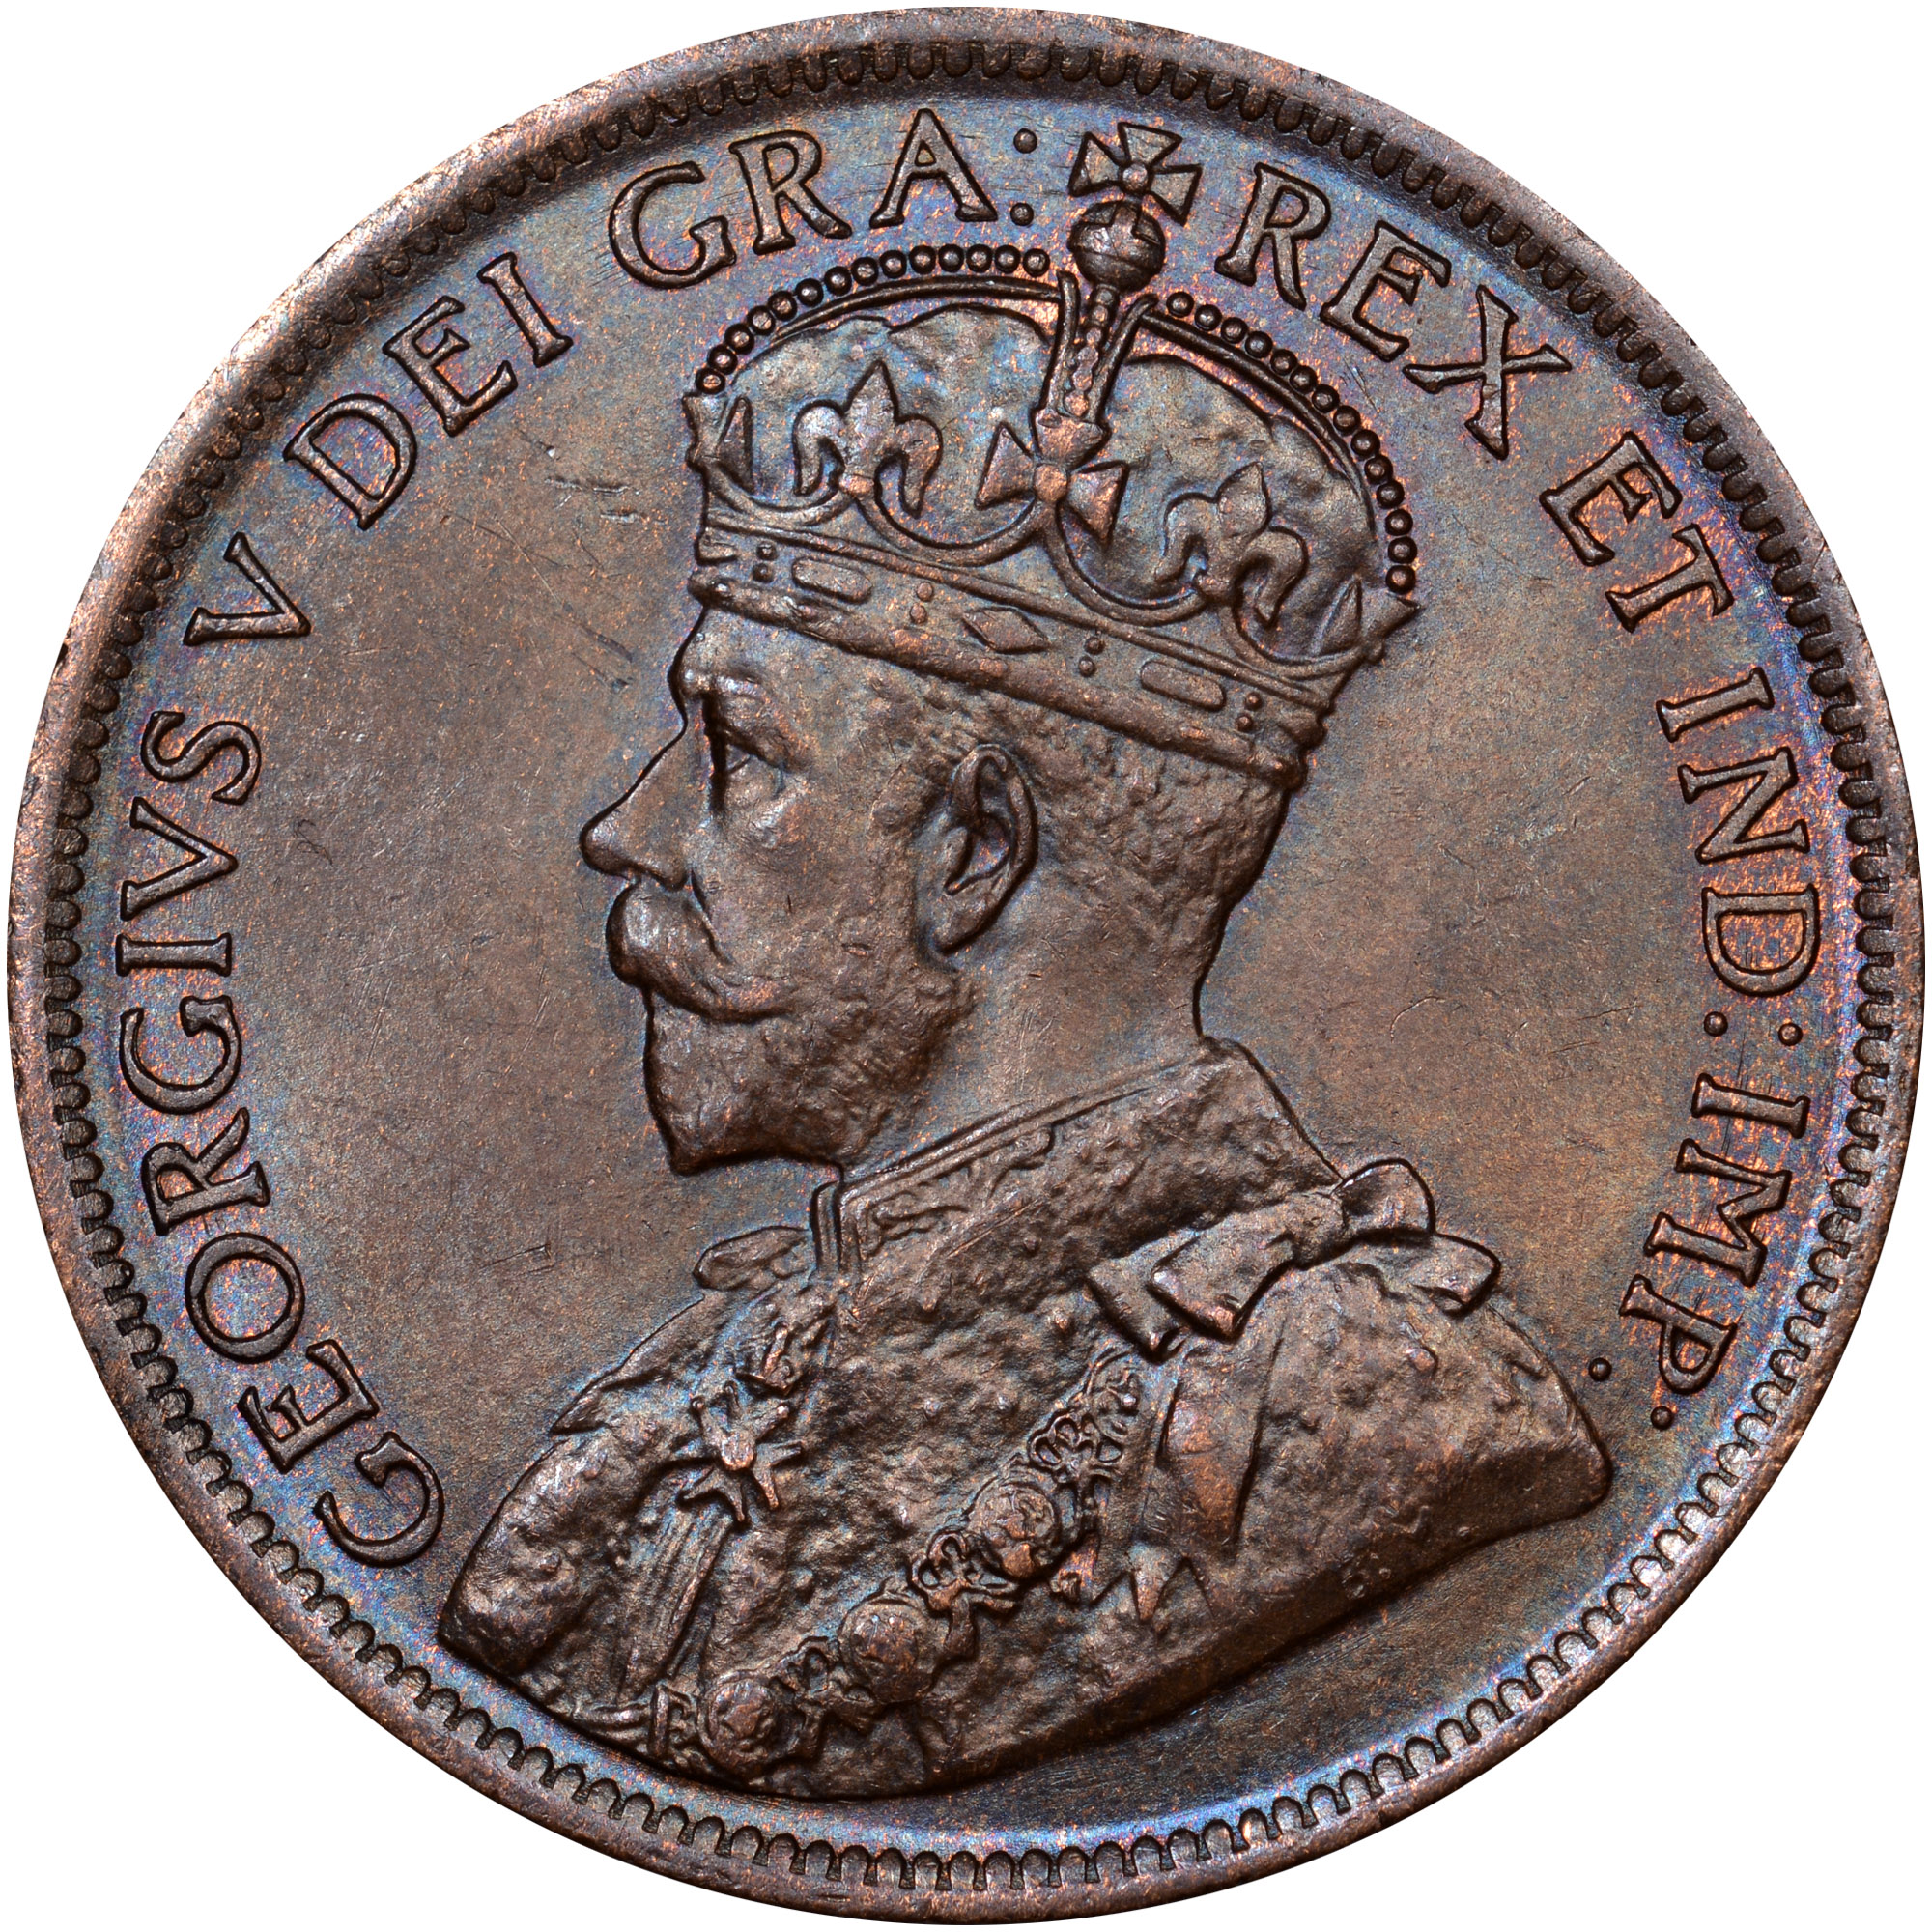 1912-1920 Canada Cent obverse